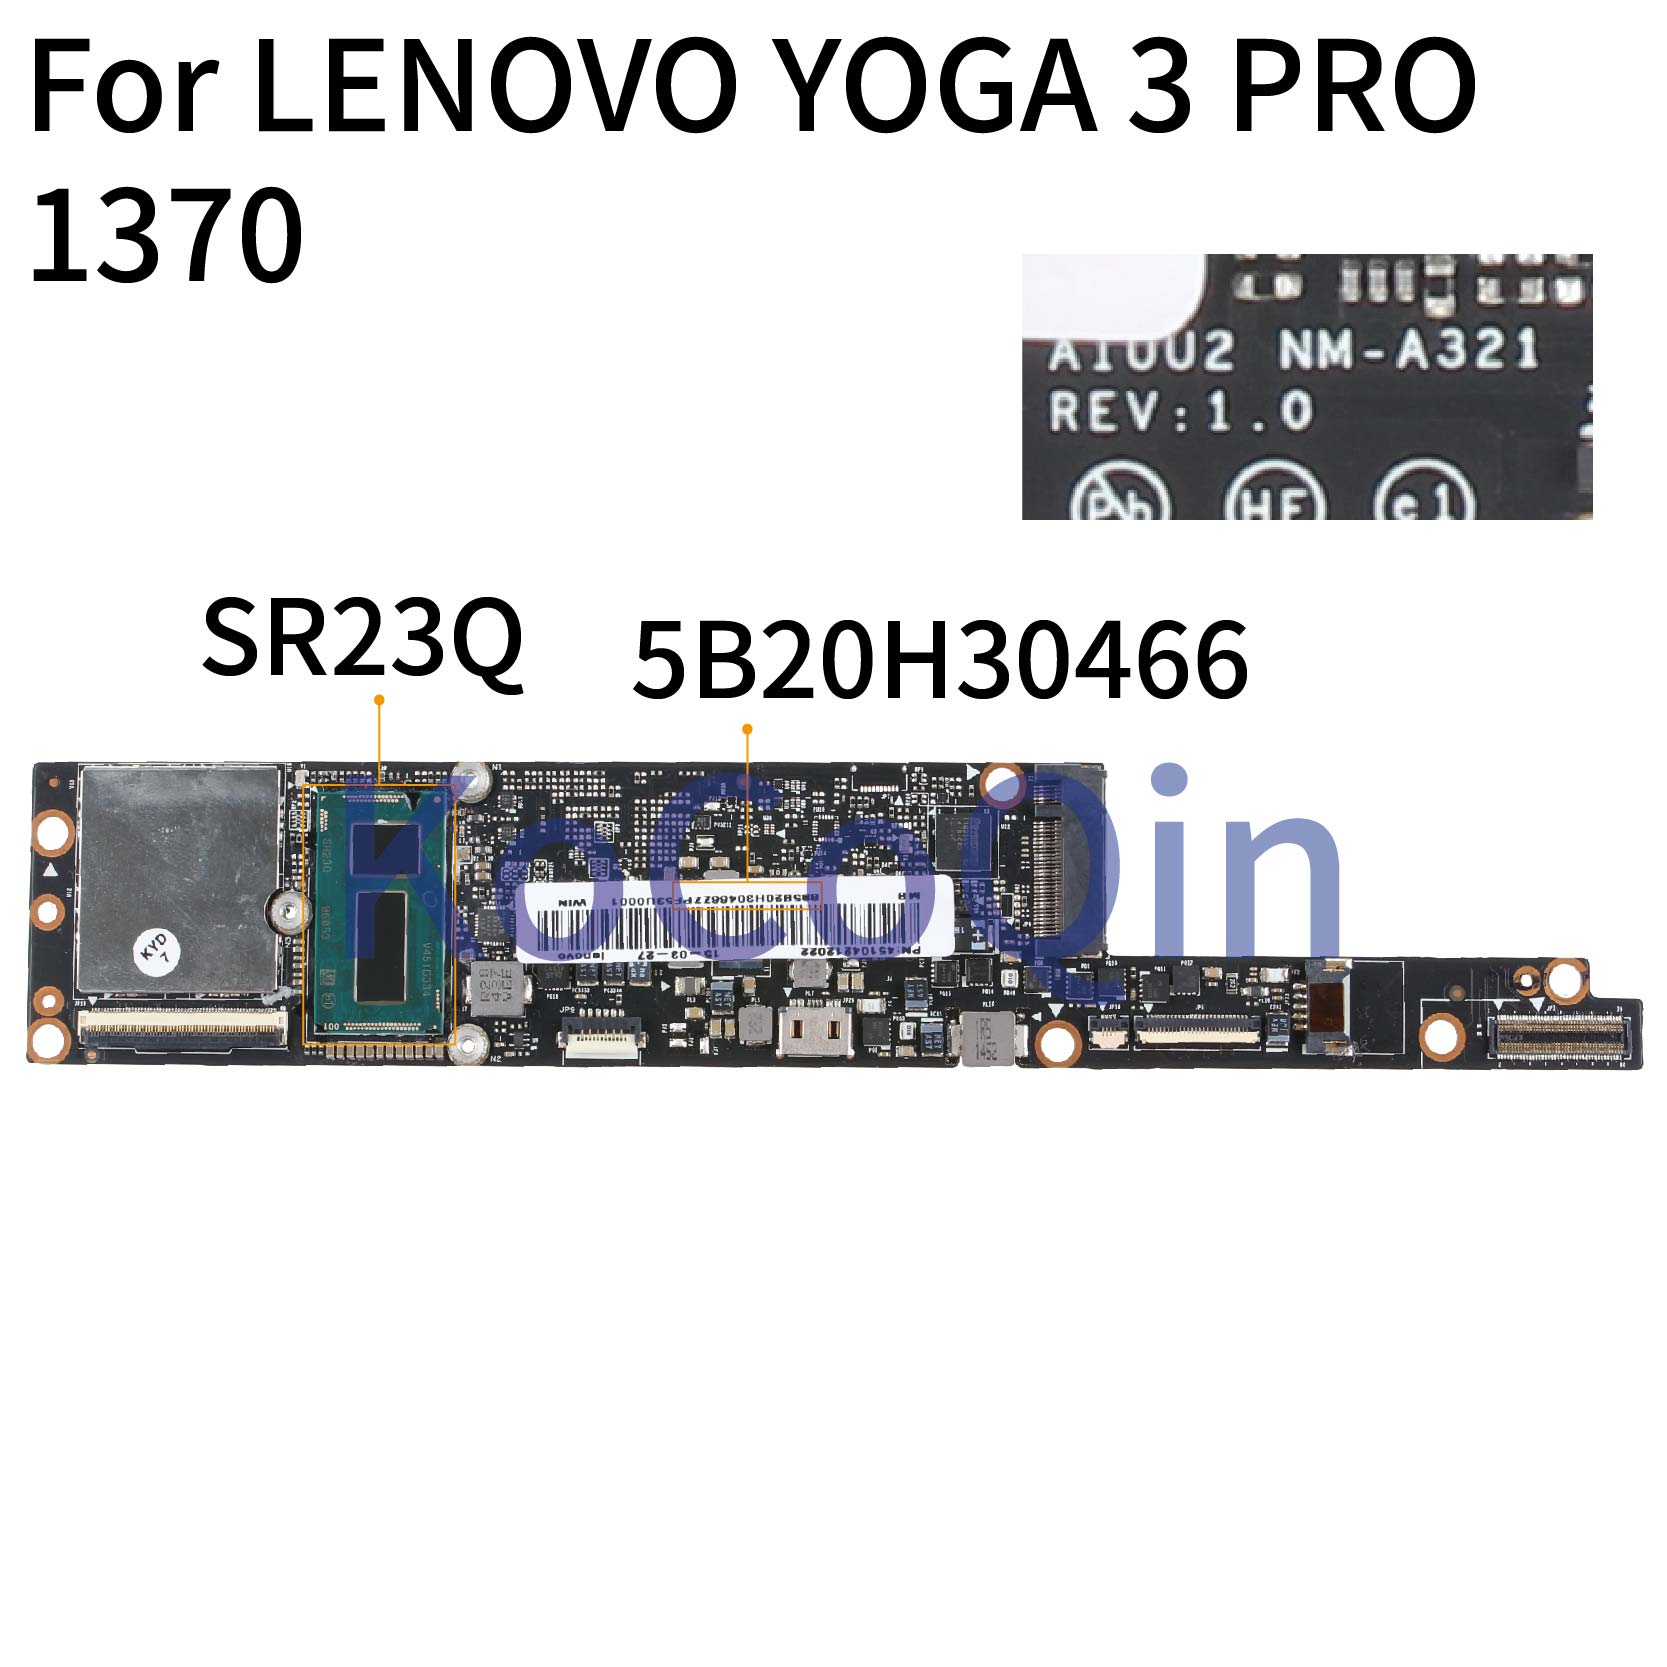 KoCoQin Laptop Motherboard For LENOVO YOGA 3 PRO 1370 Core M-5Y71 8GB Mainboard AIUU2 NM-A321 5B20H30466 SR23Q